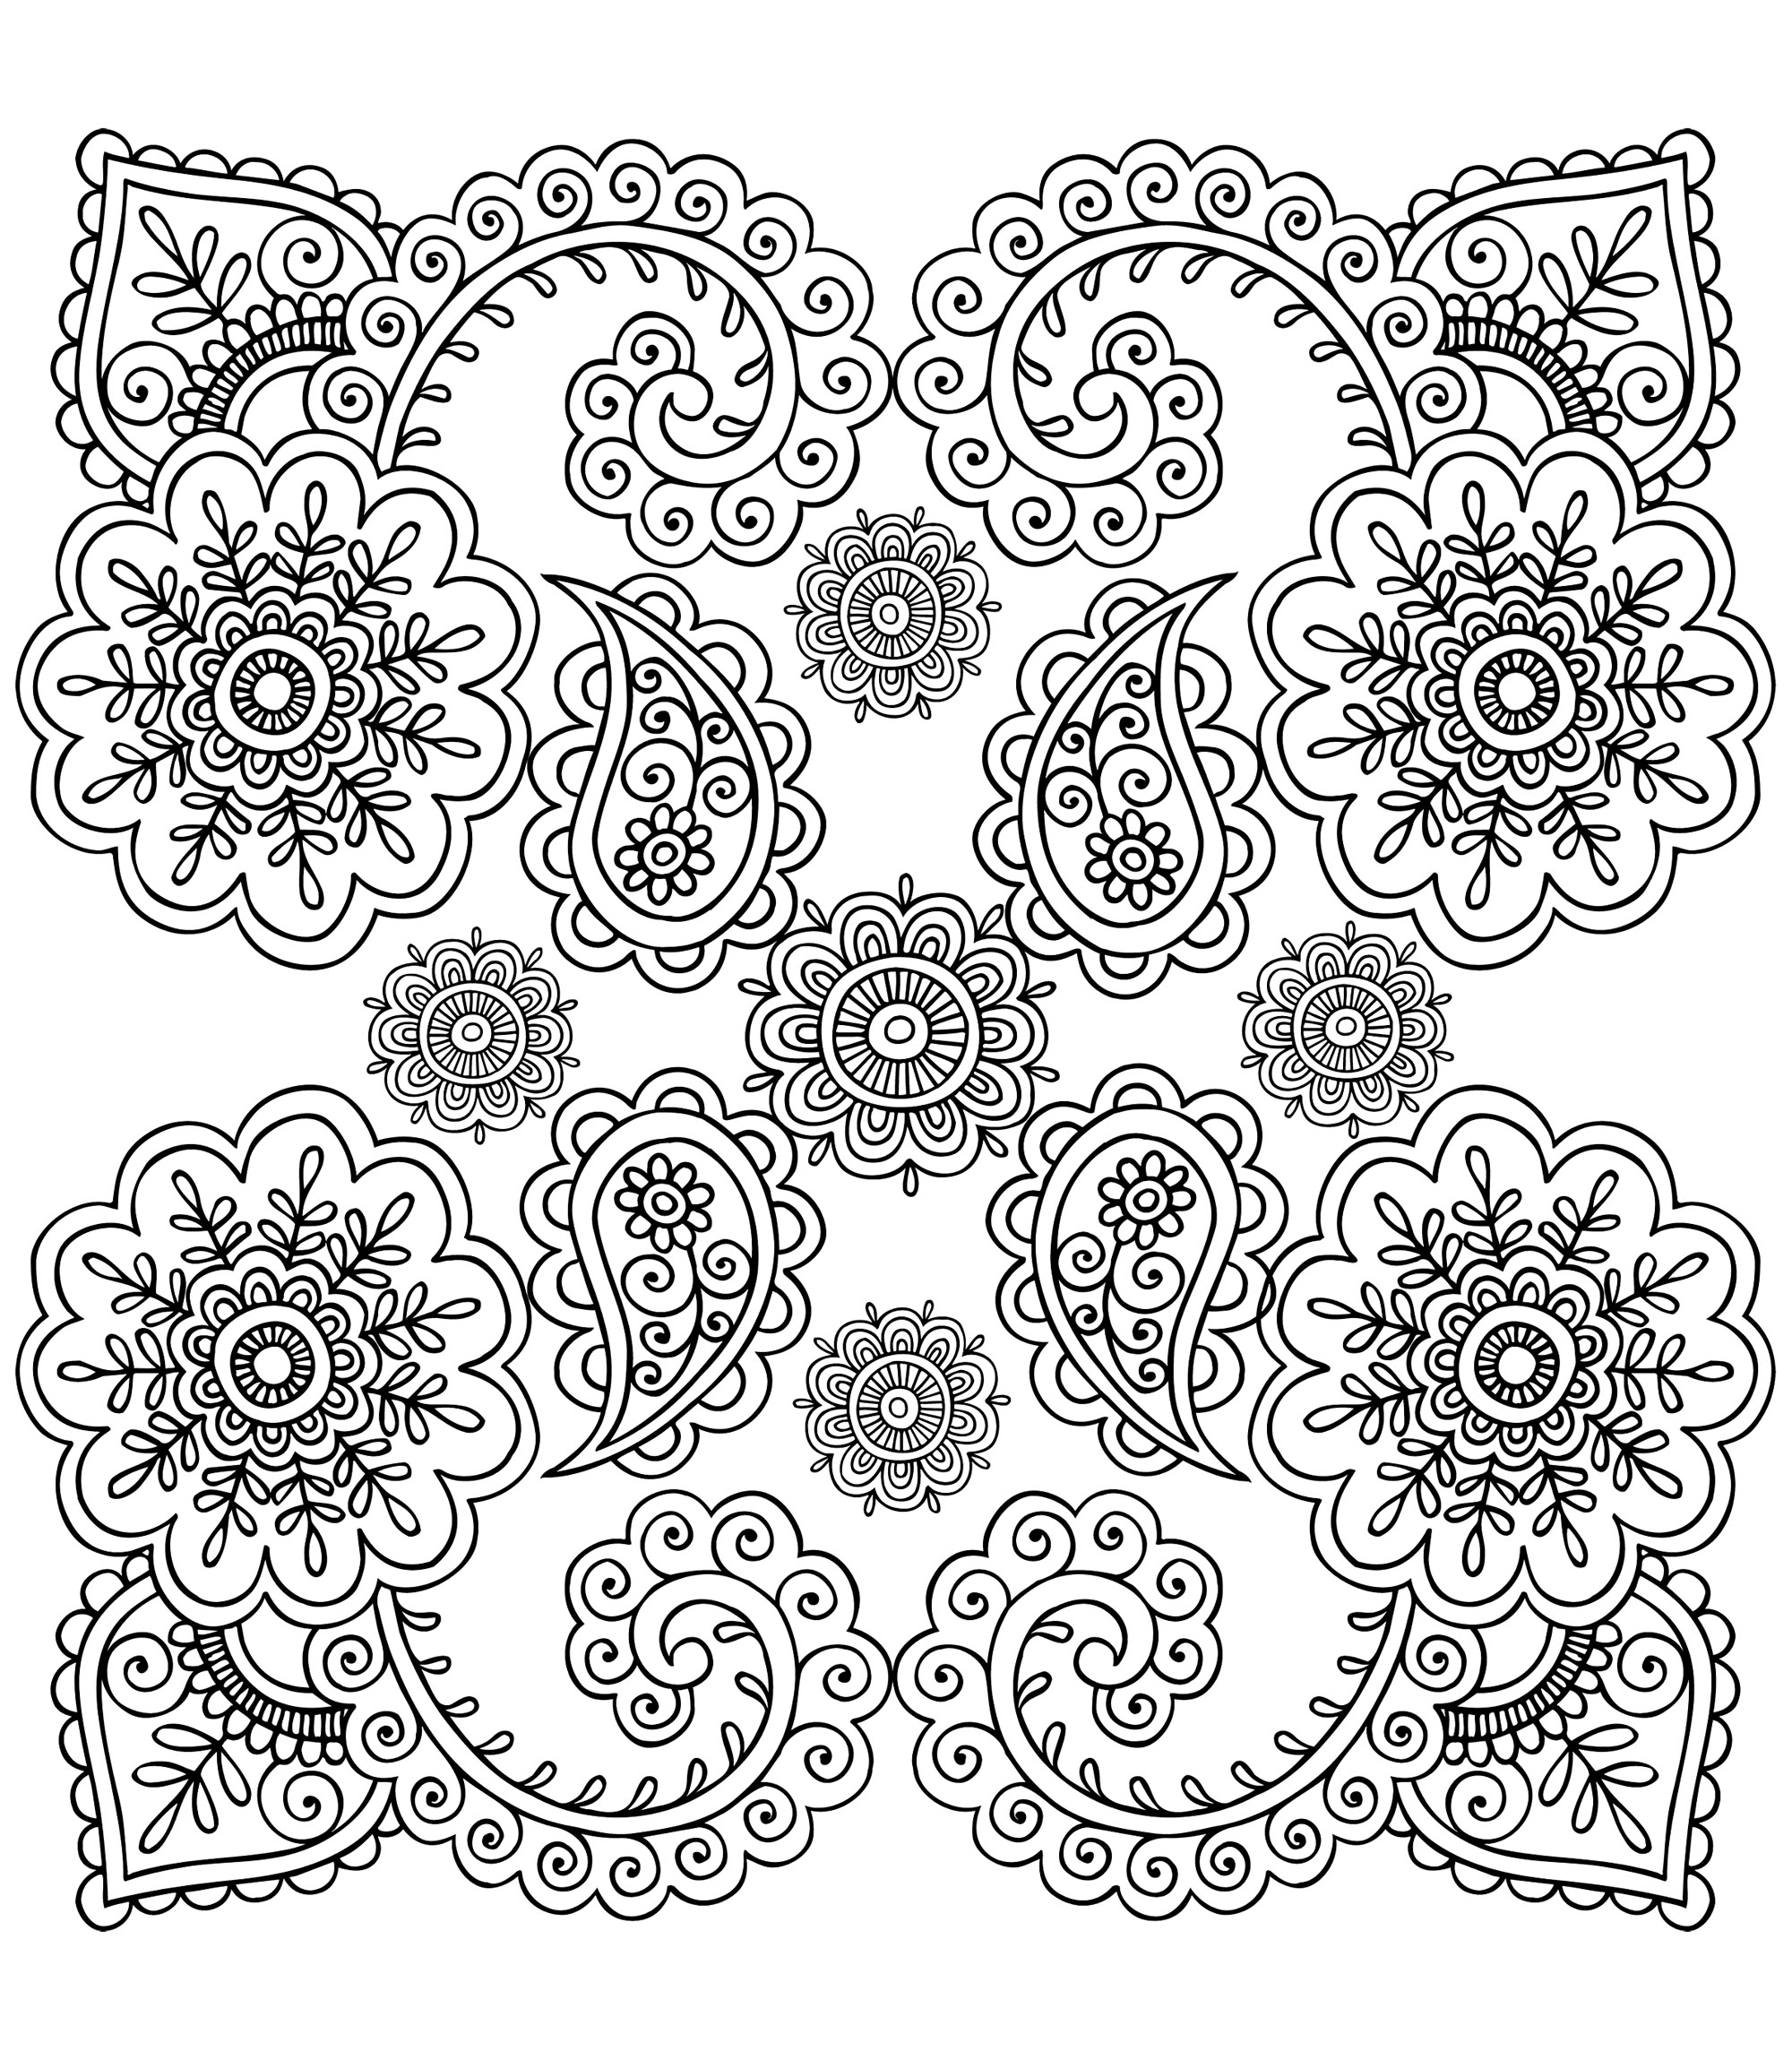 Anti stress colouring pages for adults - Anti Stress Flowers Image With Calm Down Symmetry From The Gallery